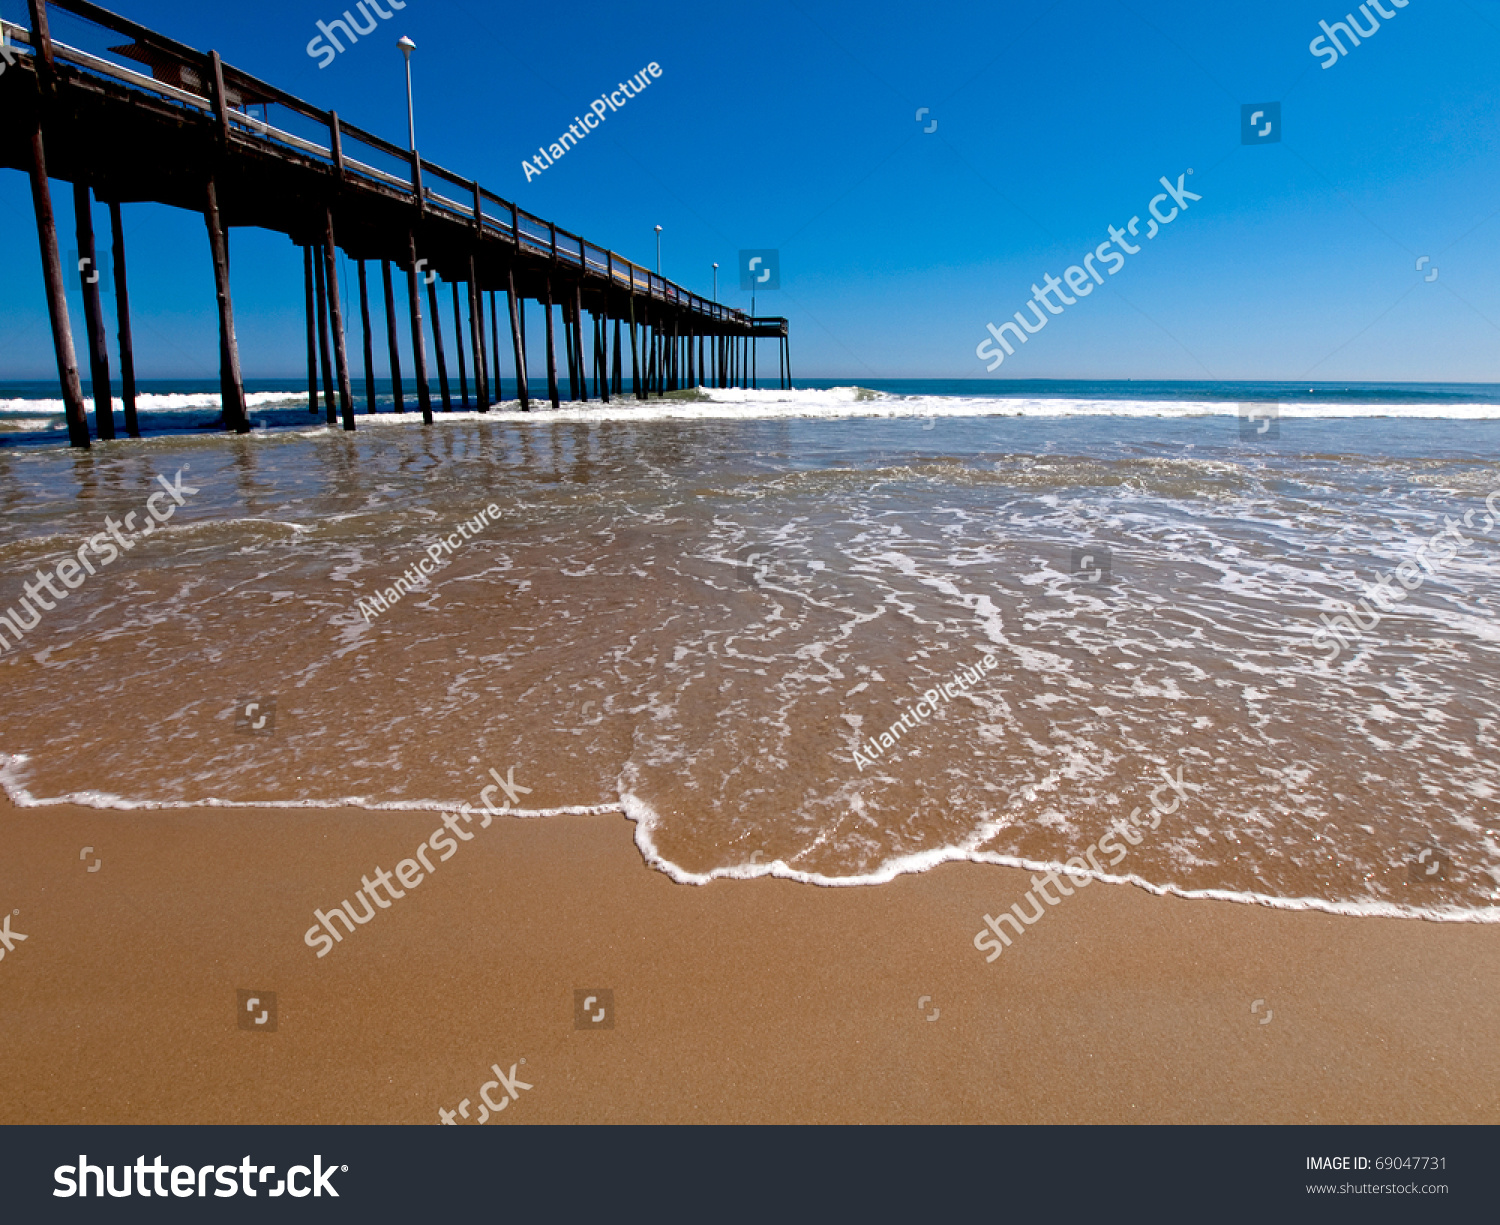 Ocean city maryland fishing pier at the sandy sunny beach for Maryland fishing piers